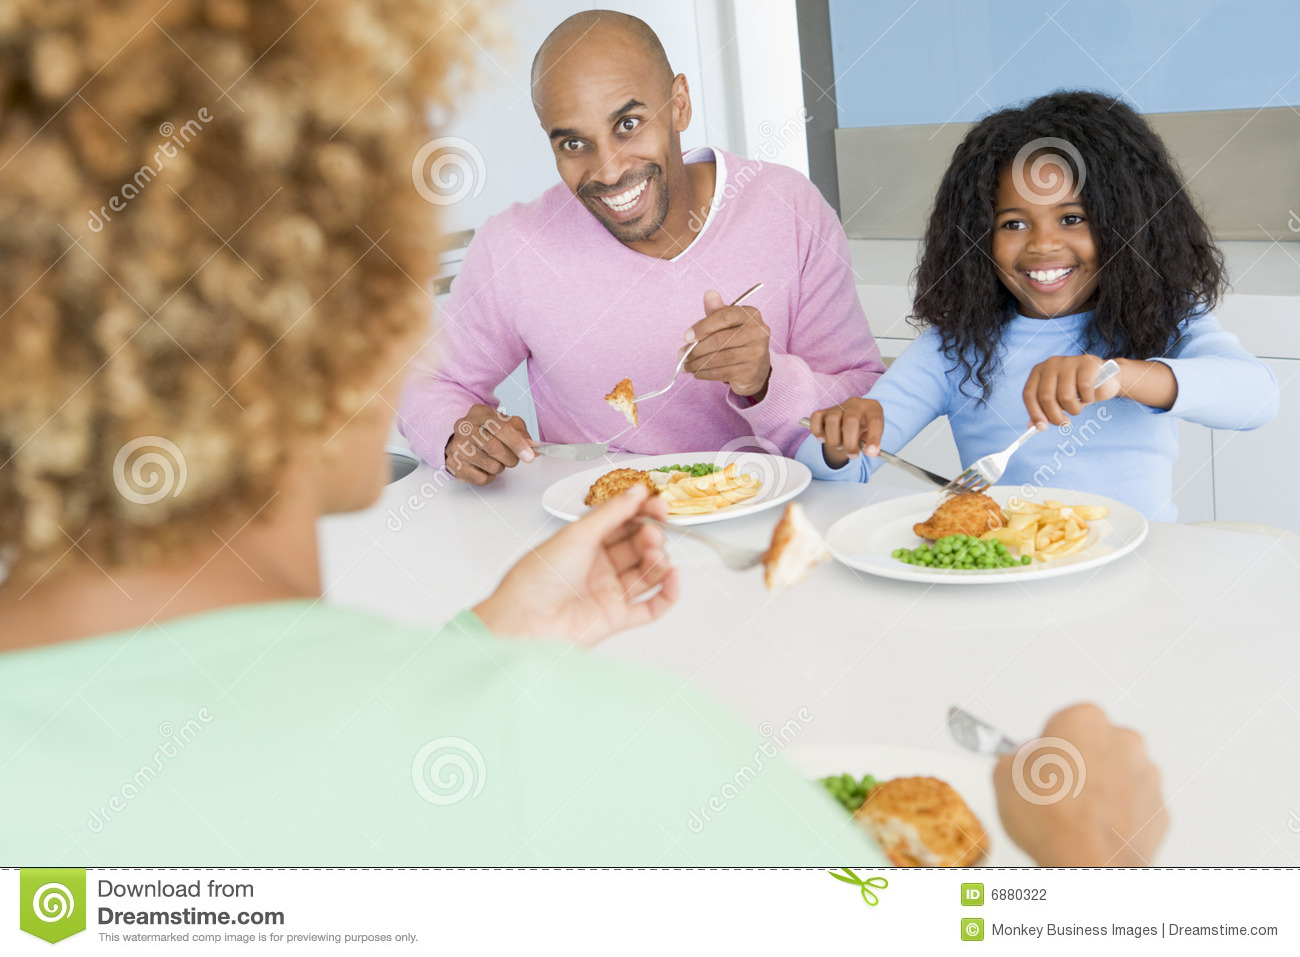 Eating family meal mealtime together